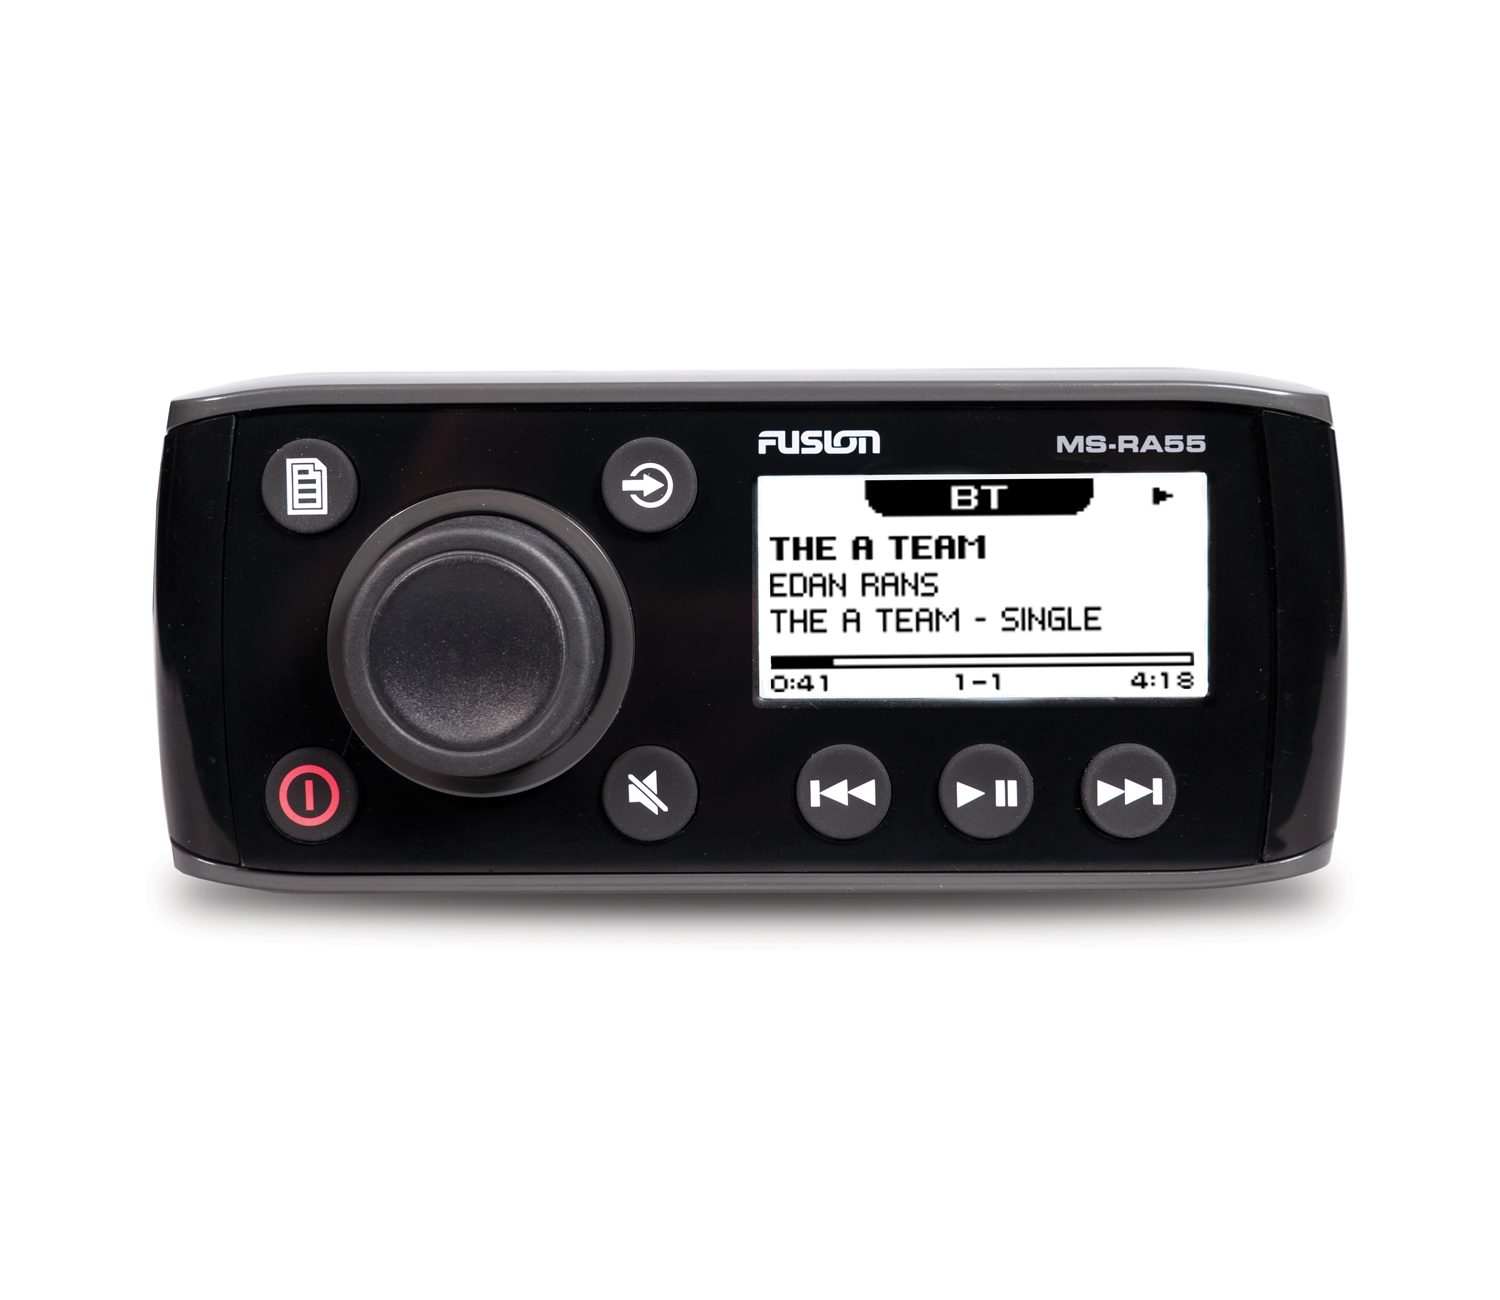 Fräscha Fusion 55 marine stereo - Comstedt NA-44